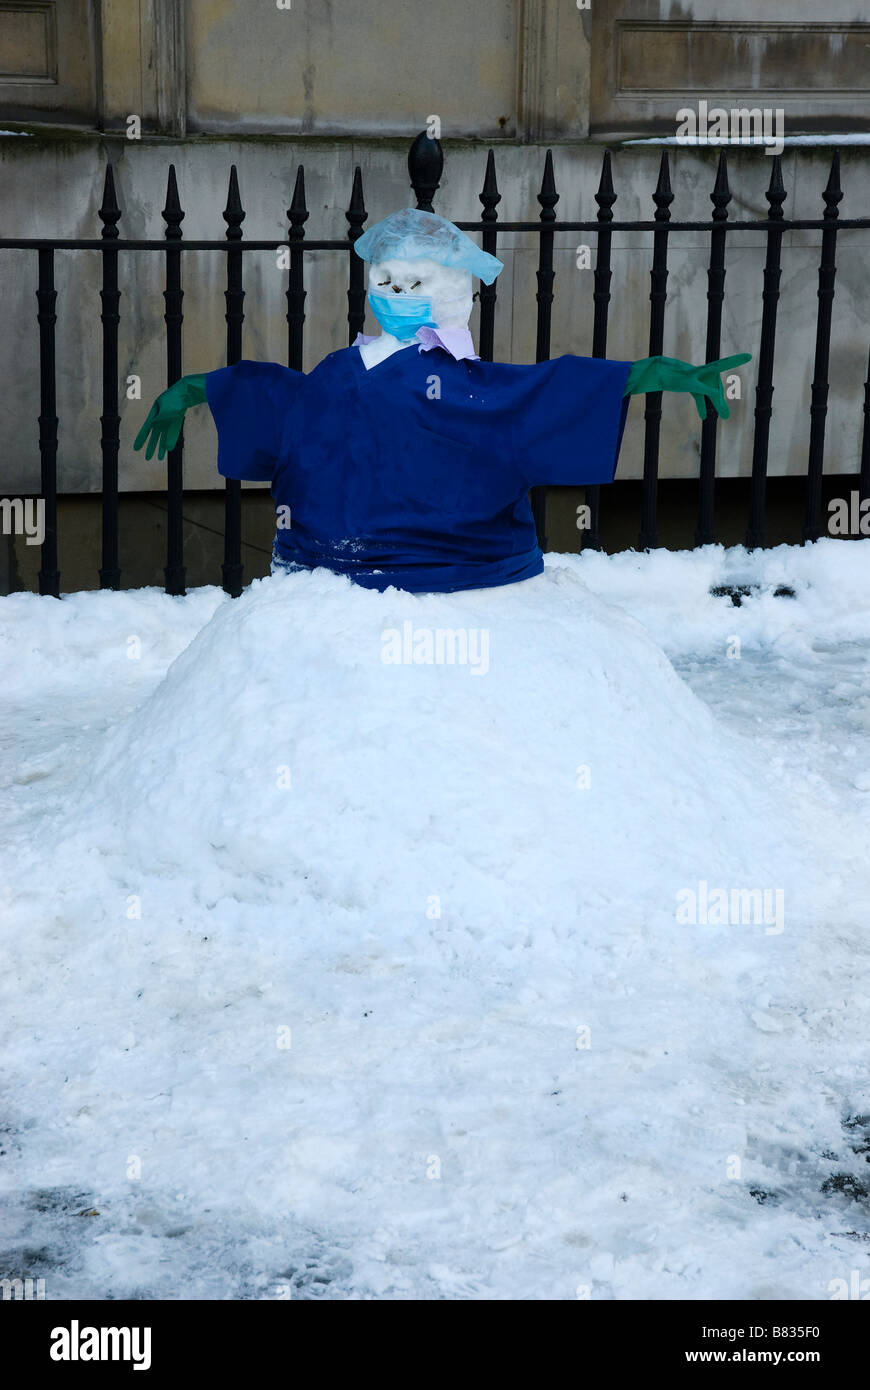 Snowman outside Royal College of Surgeons in London made using surgical clothing - Stock Image